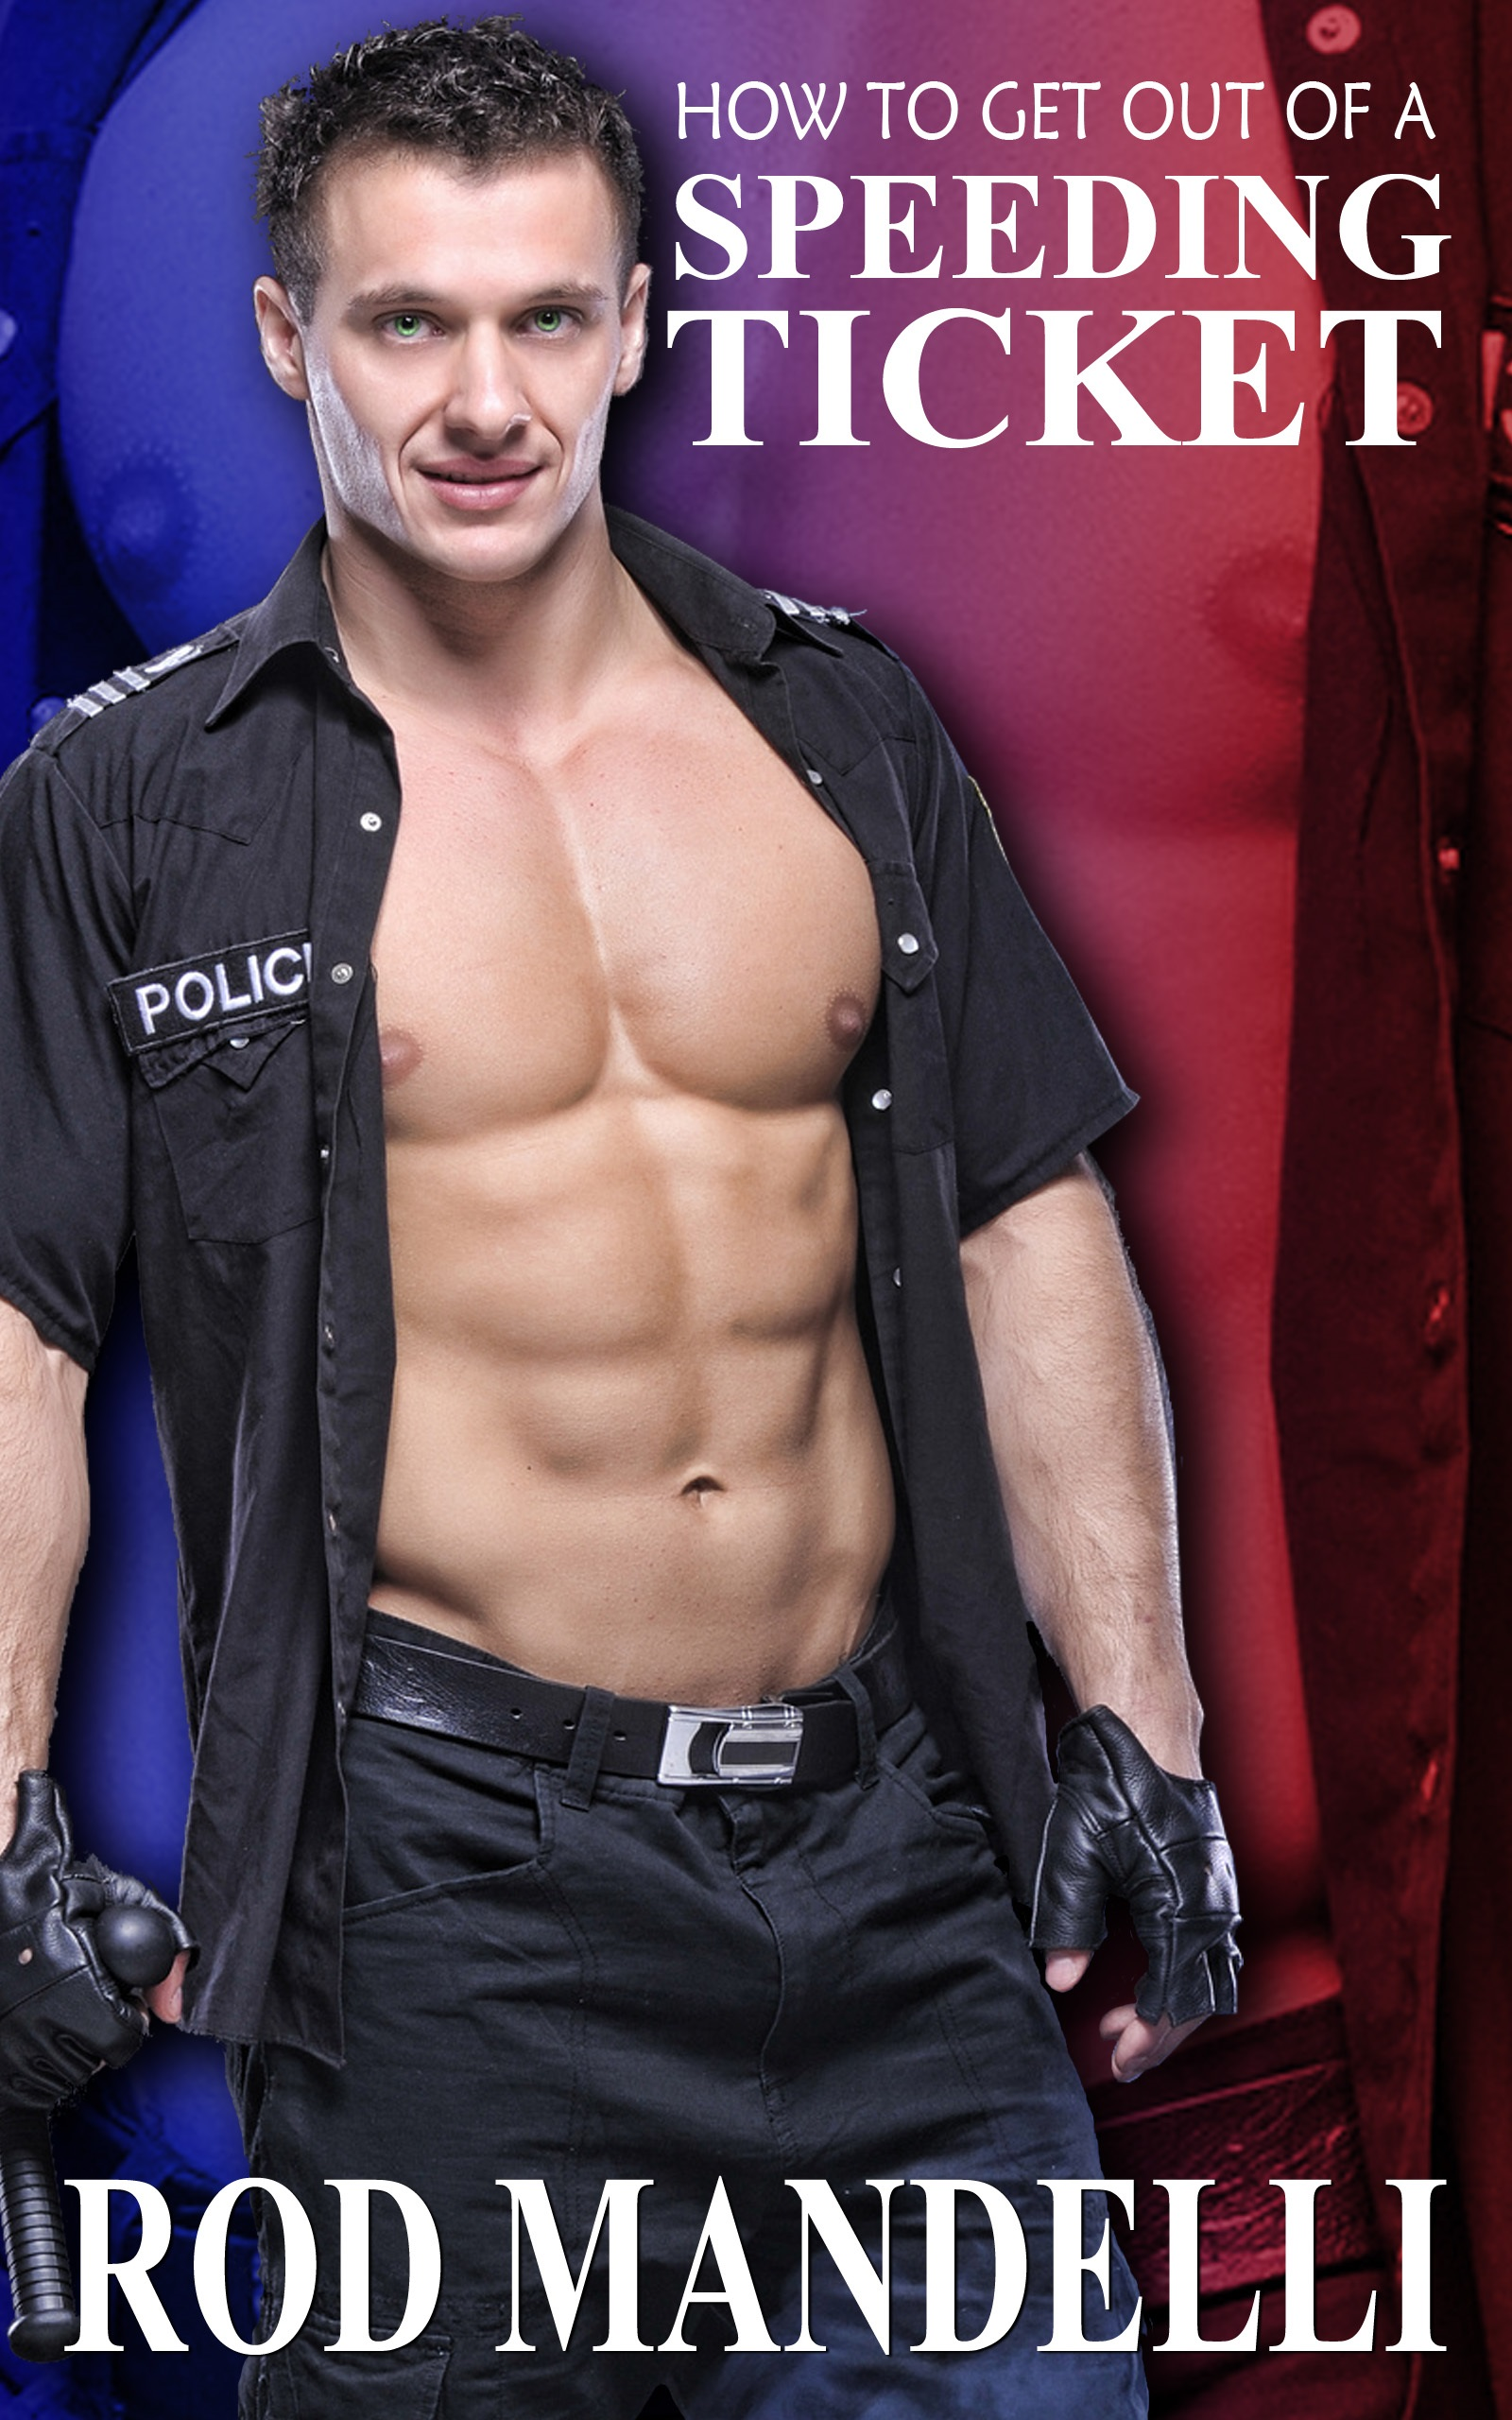 Gay sex confessions #5: how to get out of a speeding ticket